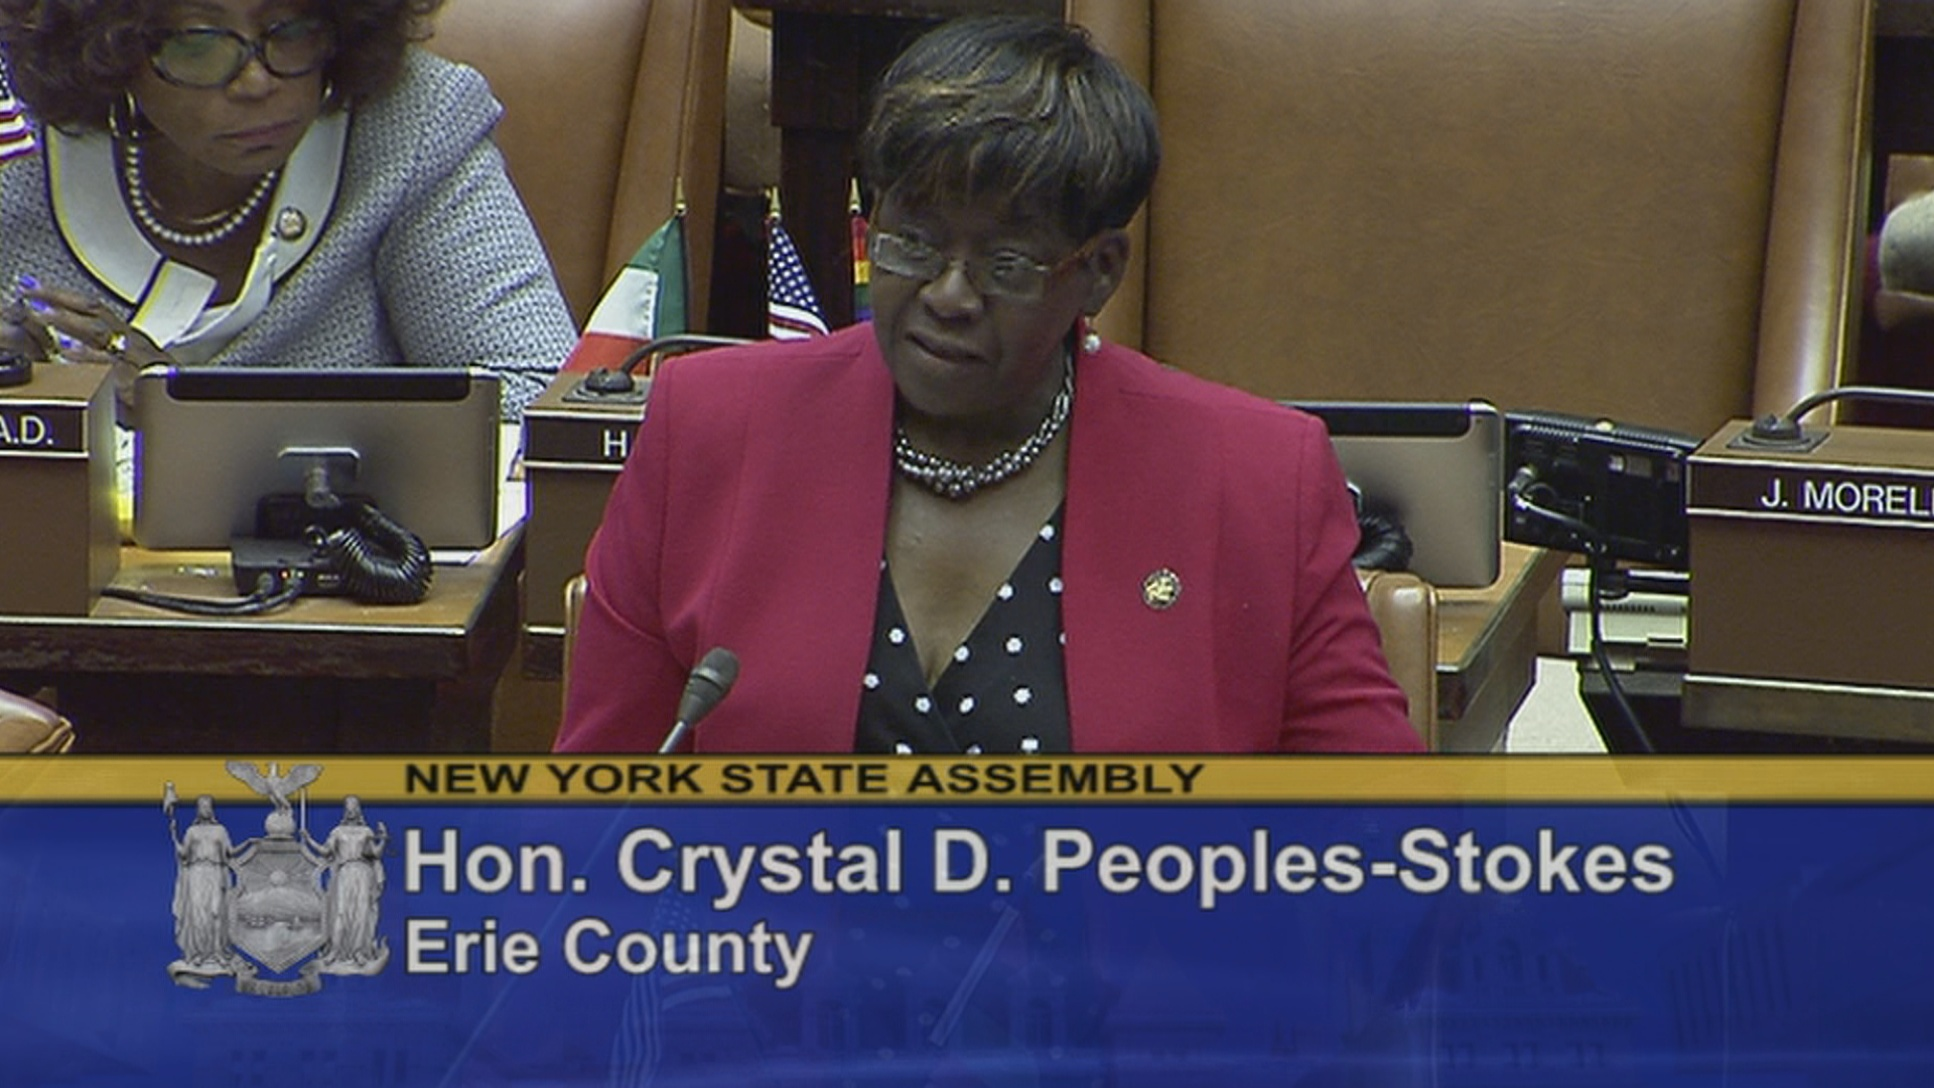 Assemblymember Peoples-Stokes on Opioid Education